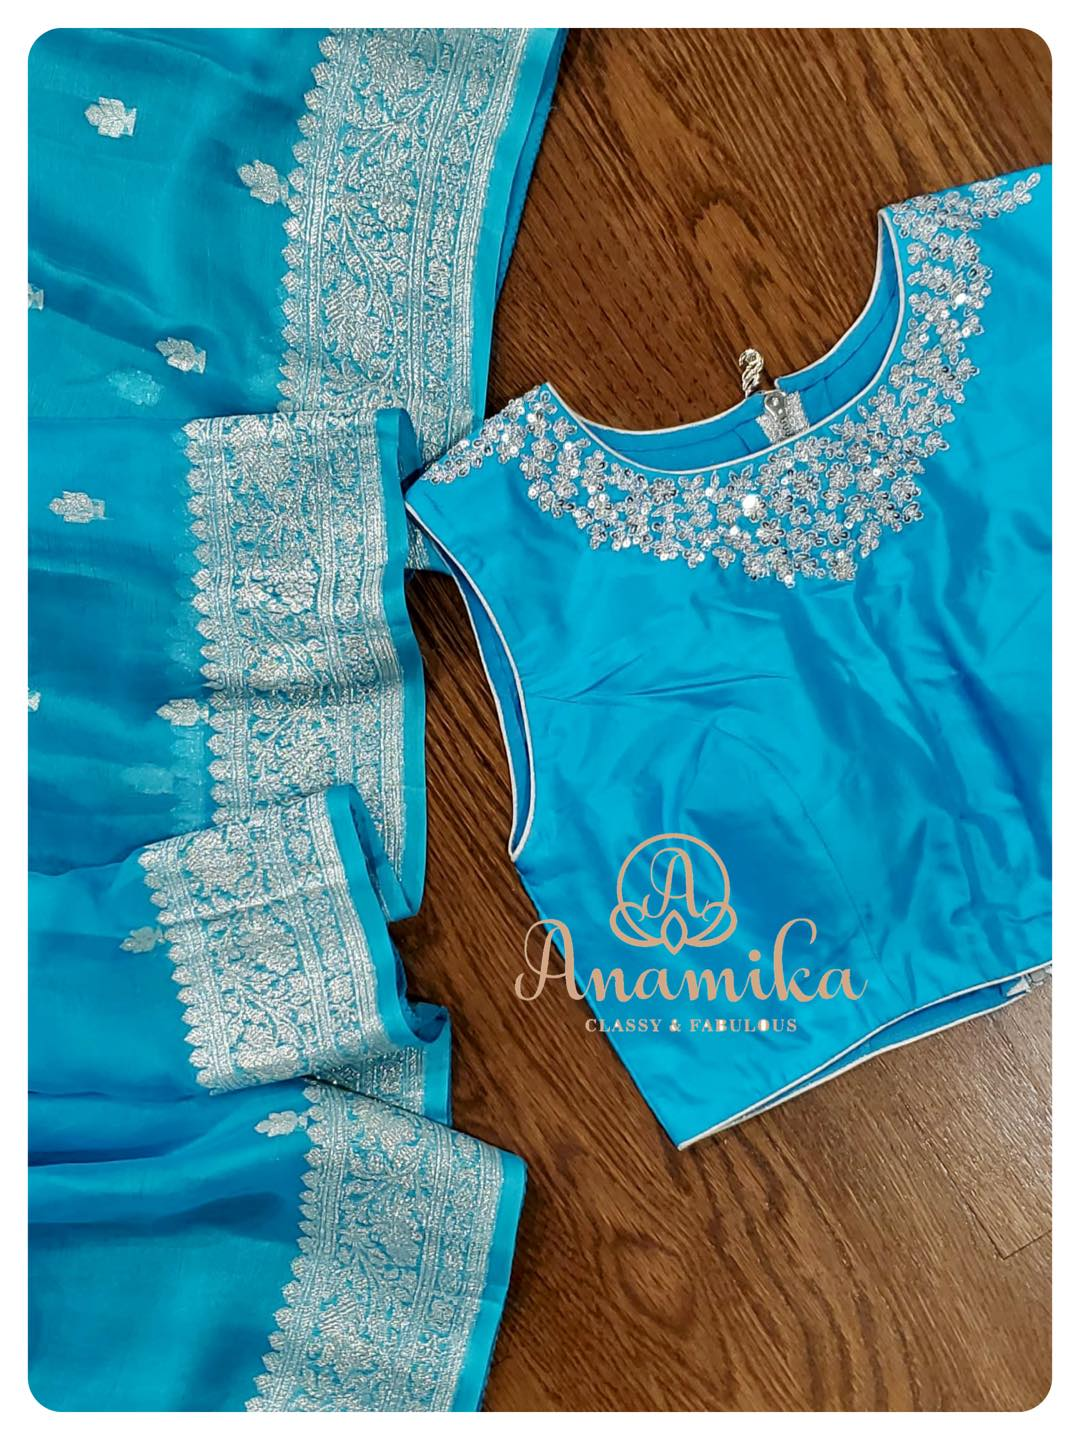 Yet another Banarasi chiffon saree in a lovely shade of blue - paired with a simple yet contemporary pure silk blouse!  DM 360-545-3636 for inquiries 2021-06-22